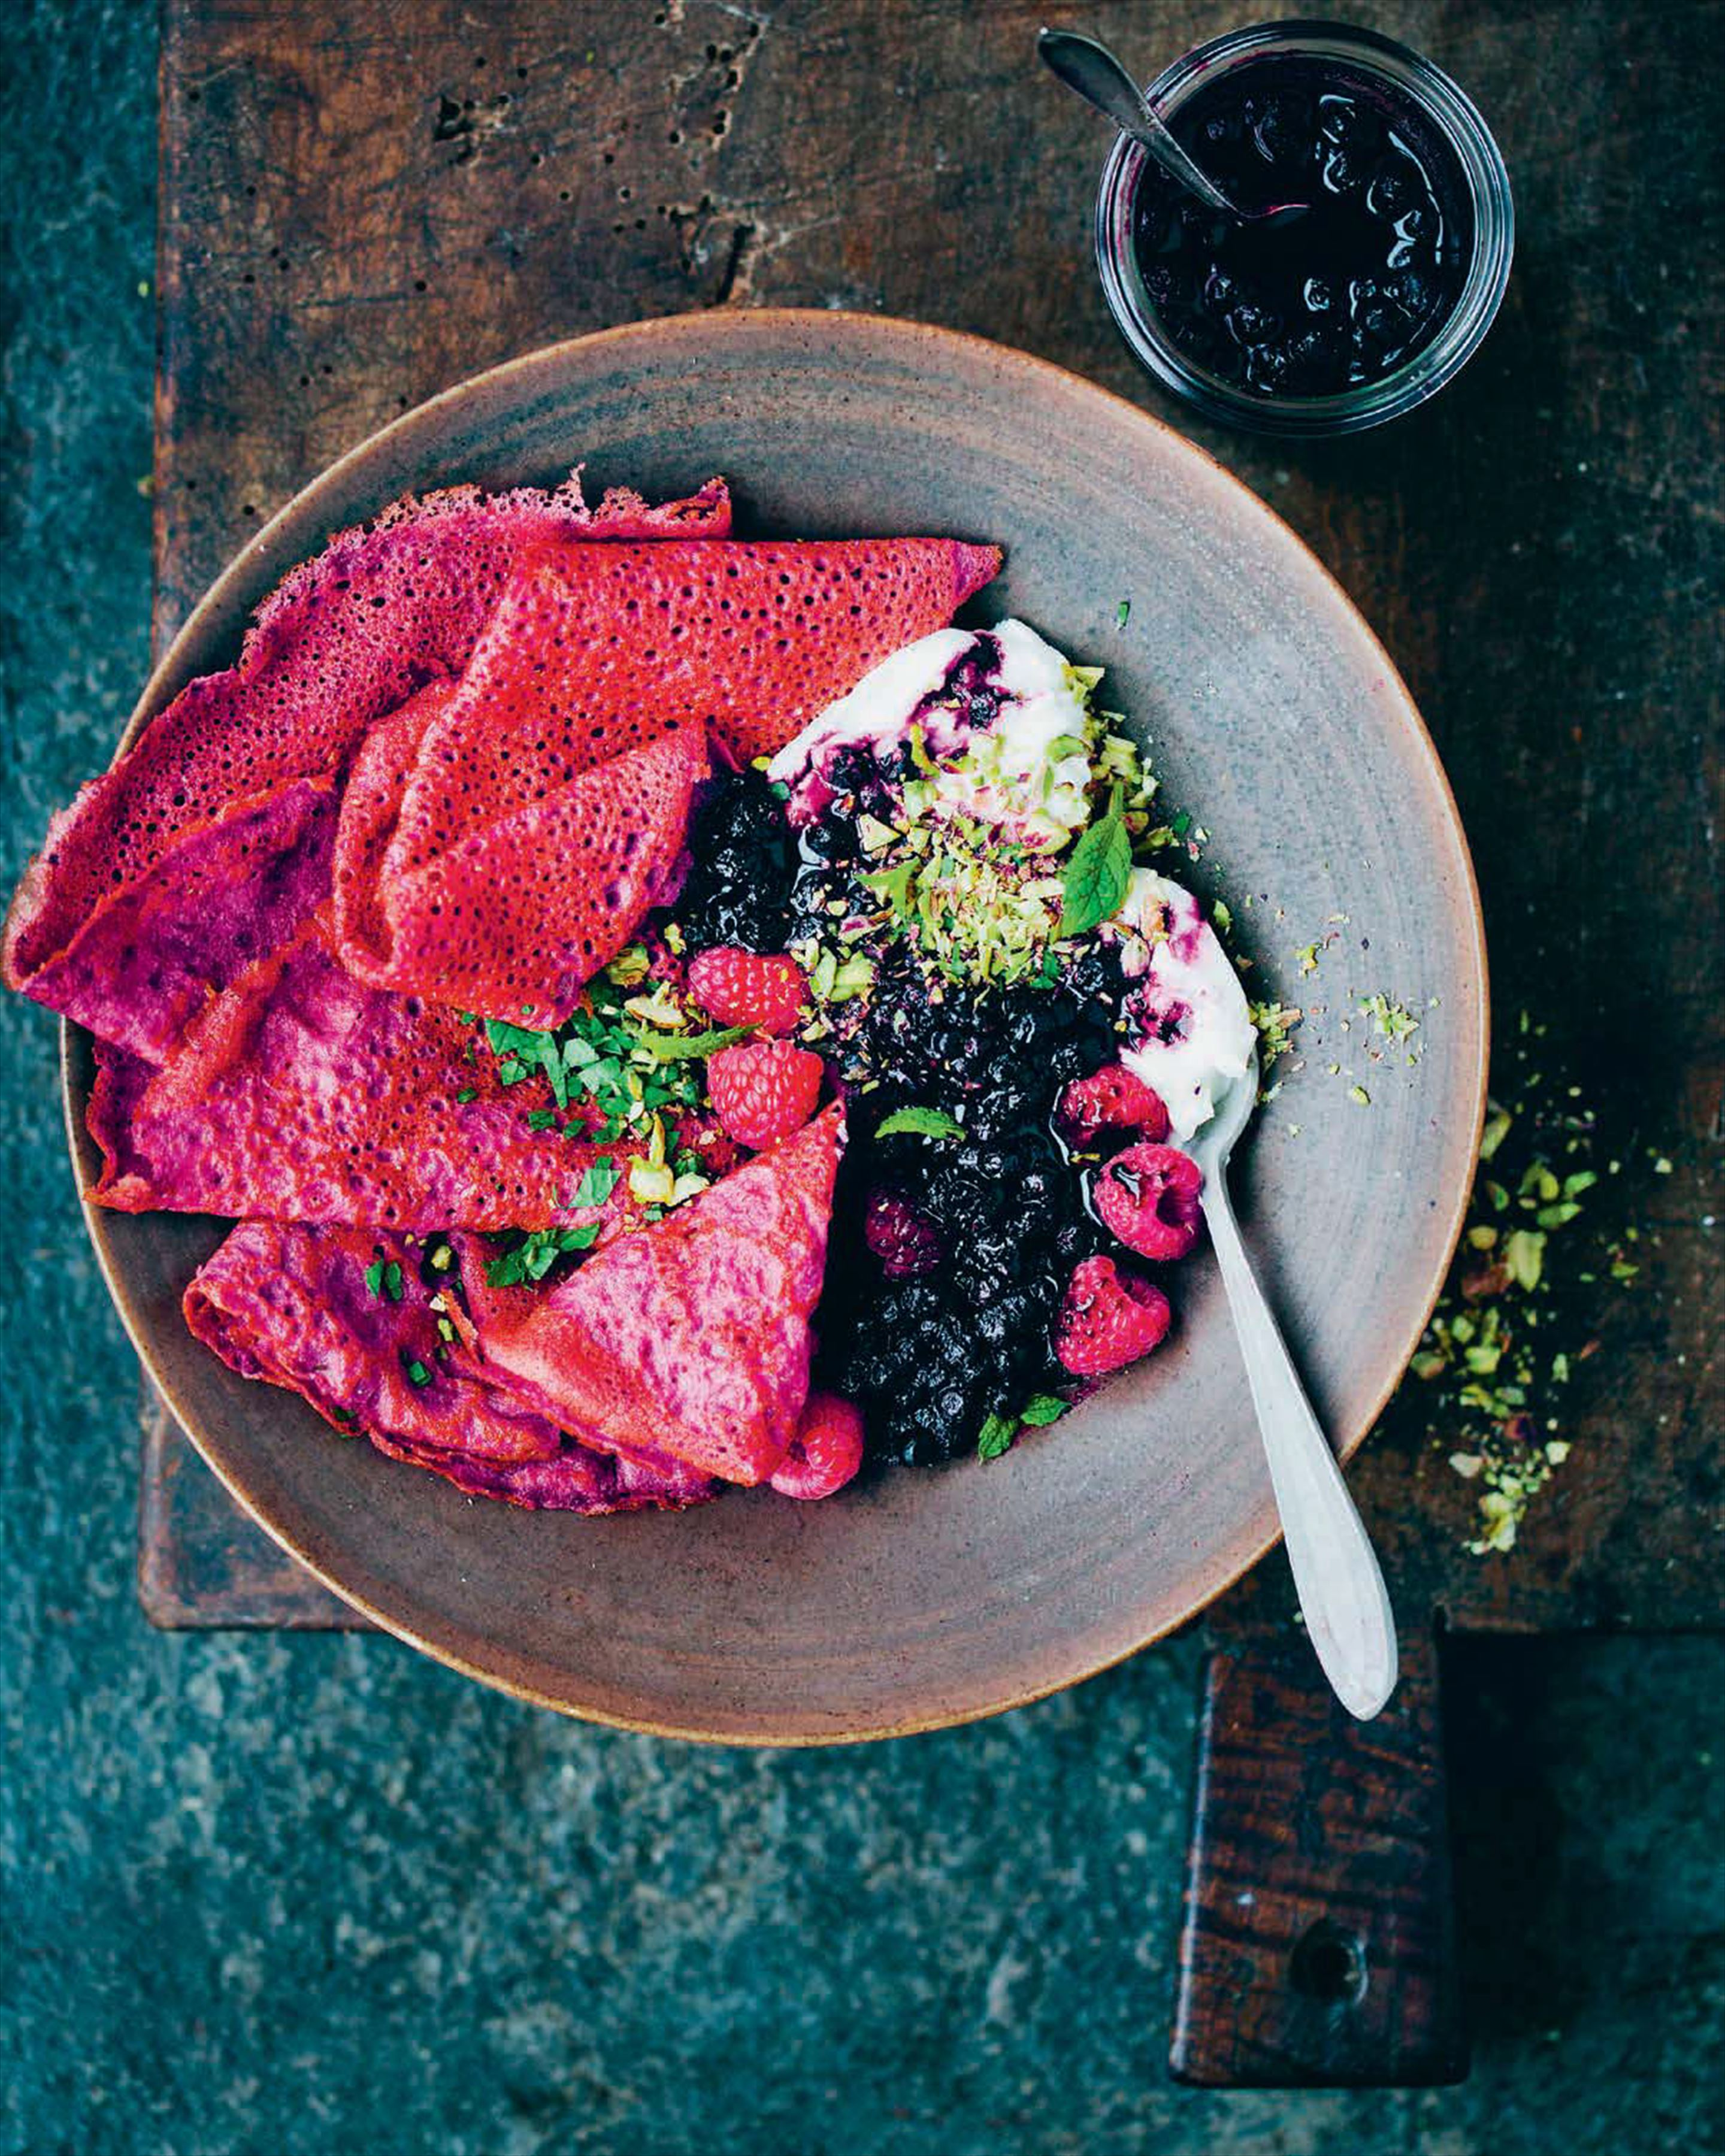 Beetroot crepes with warm blueberry compote and yoghurt